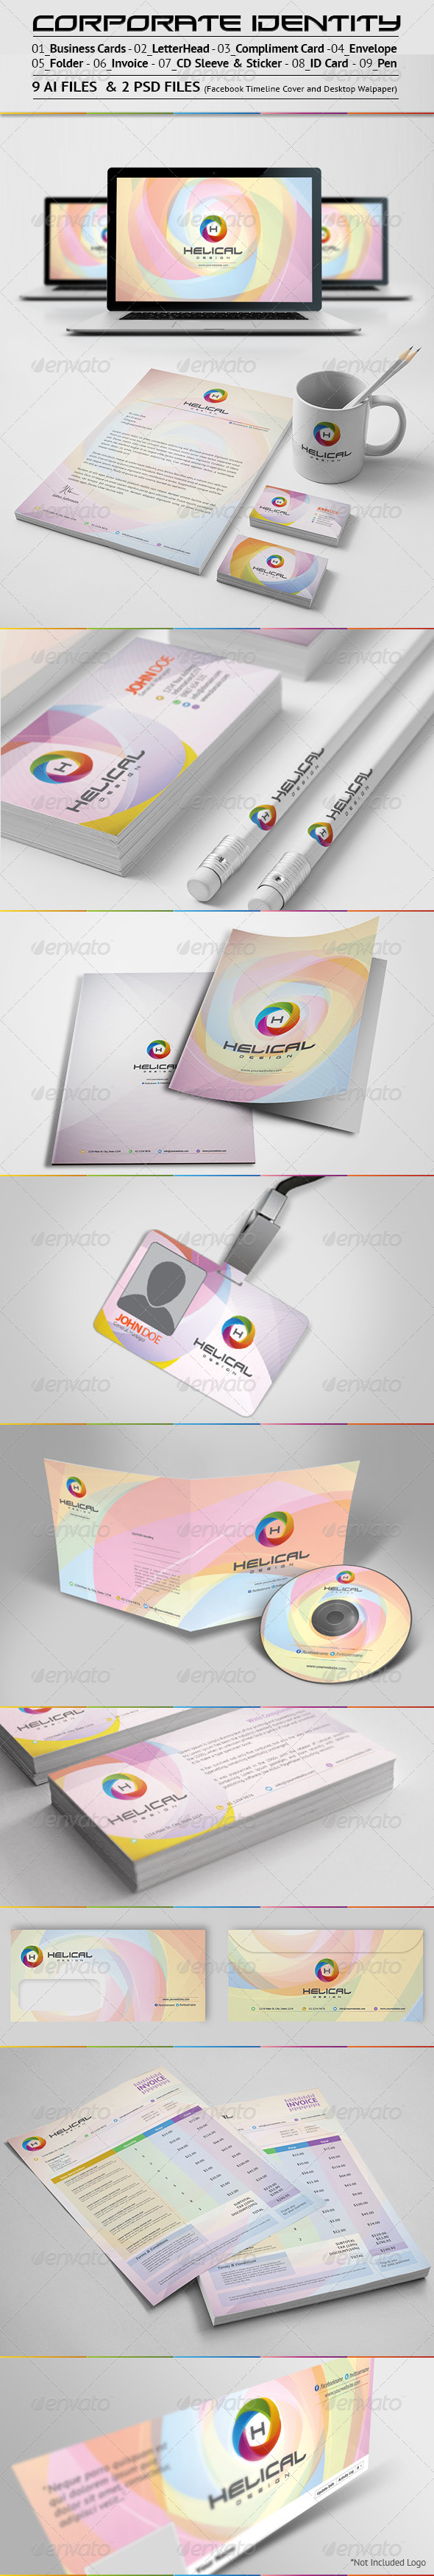 GraphicRiver Corporate Identity Branding Pack 5515254